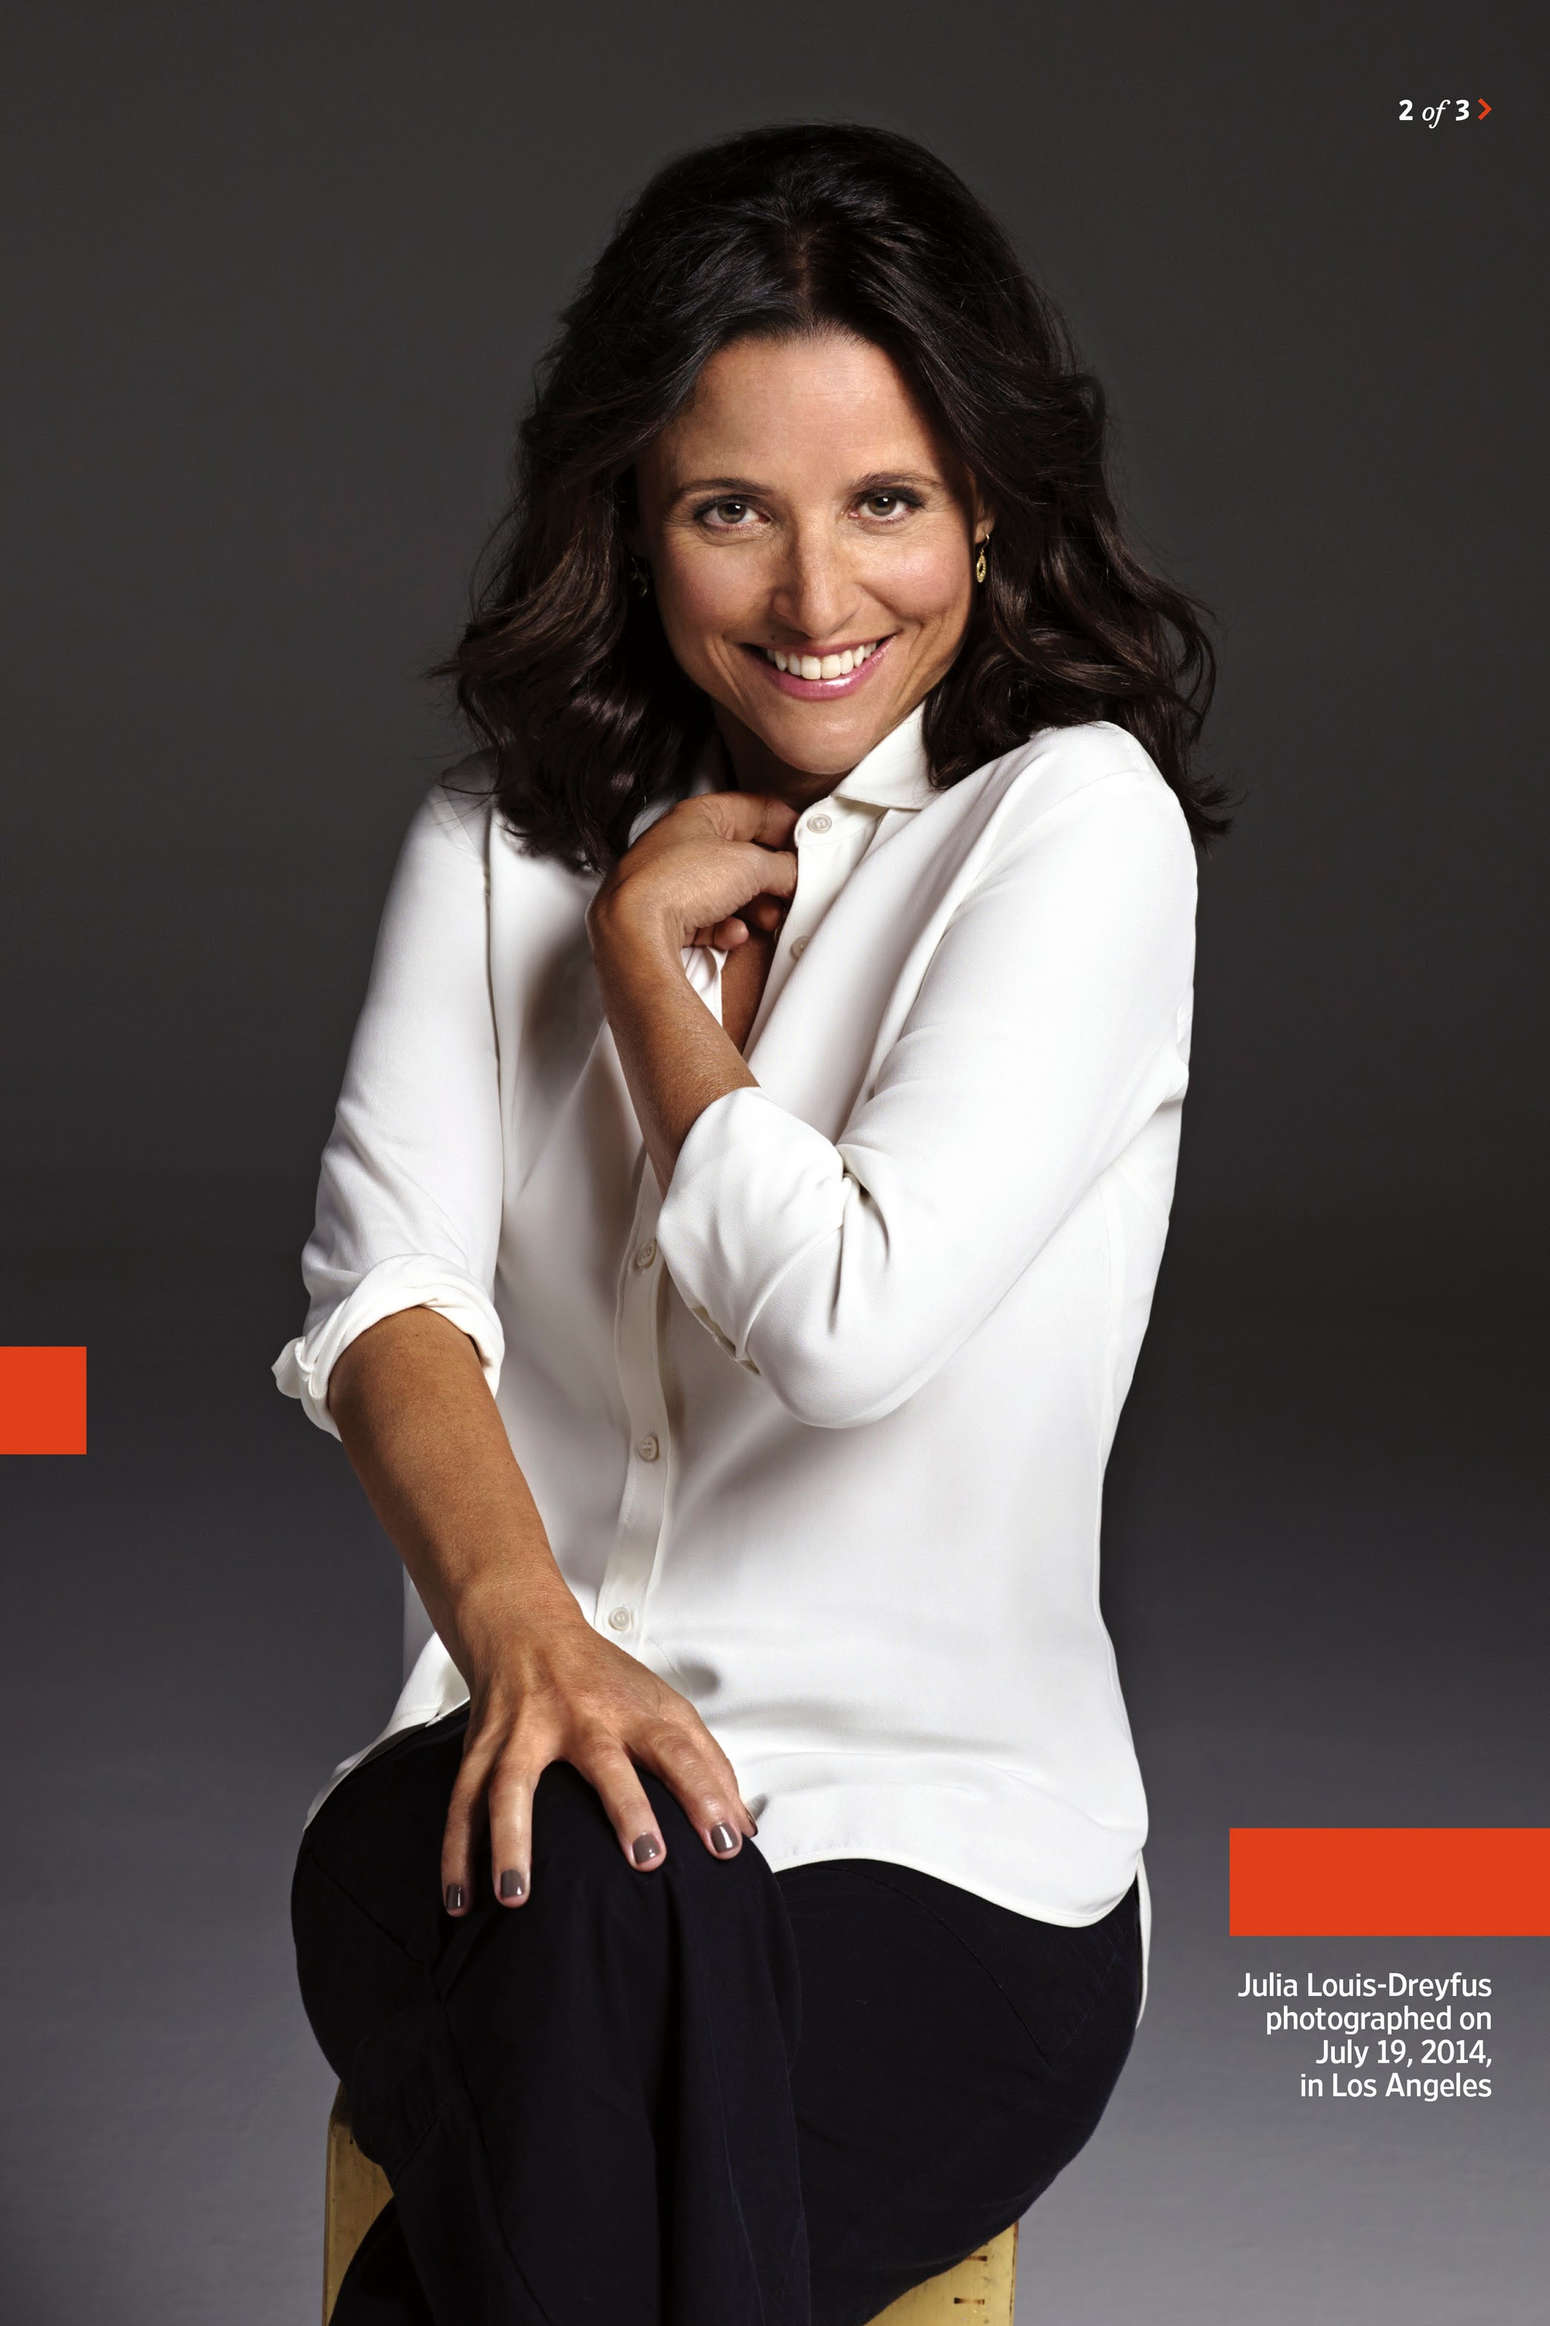 Julia Louis-Dreyfus Entertainment Weekly Magazine